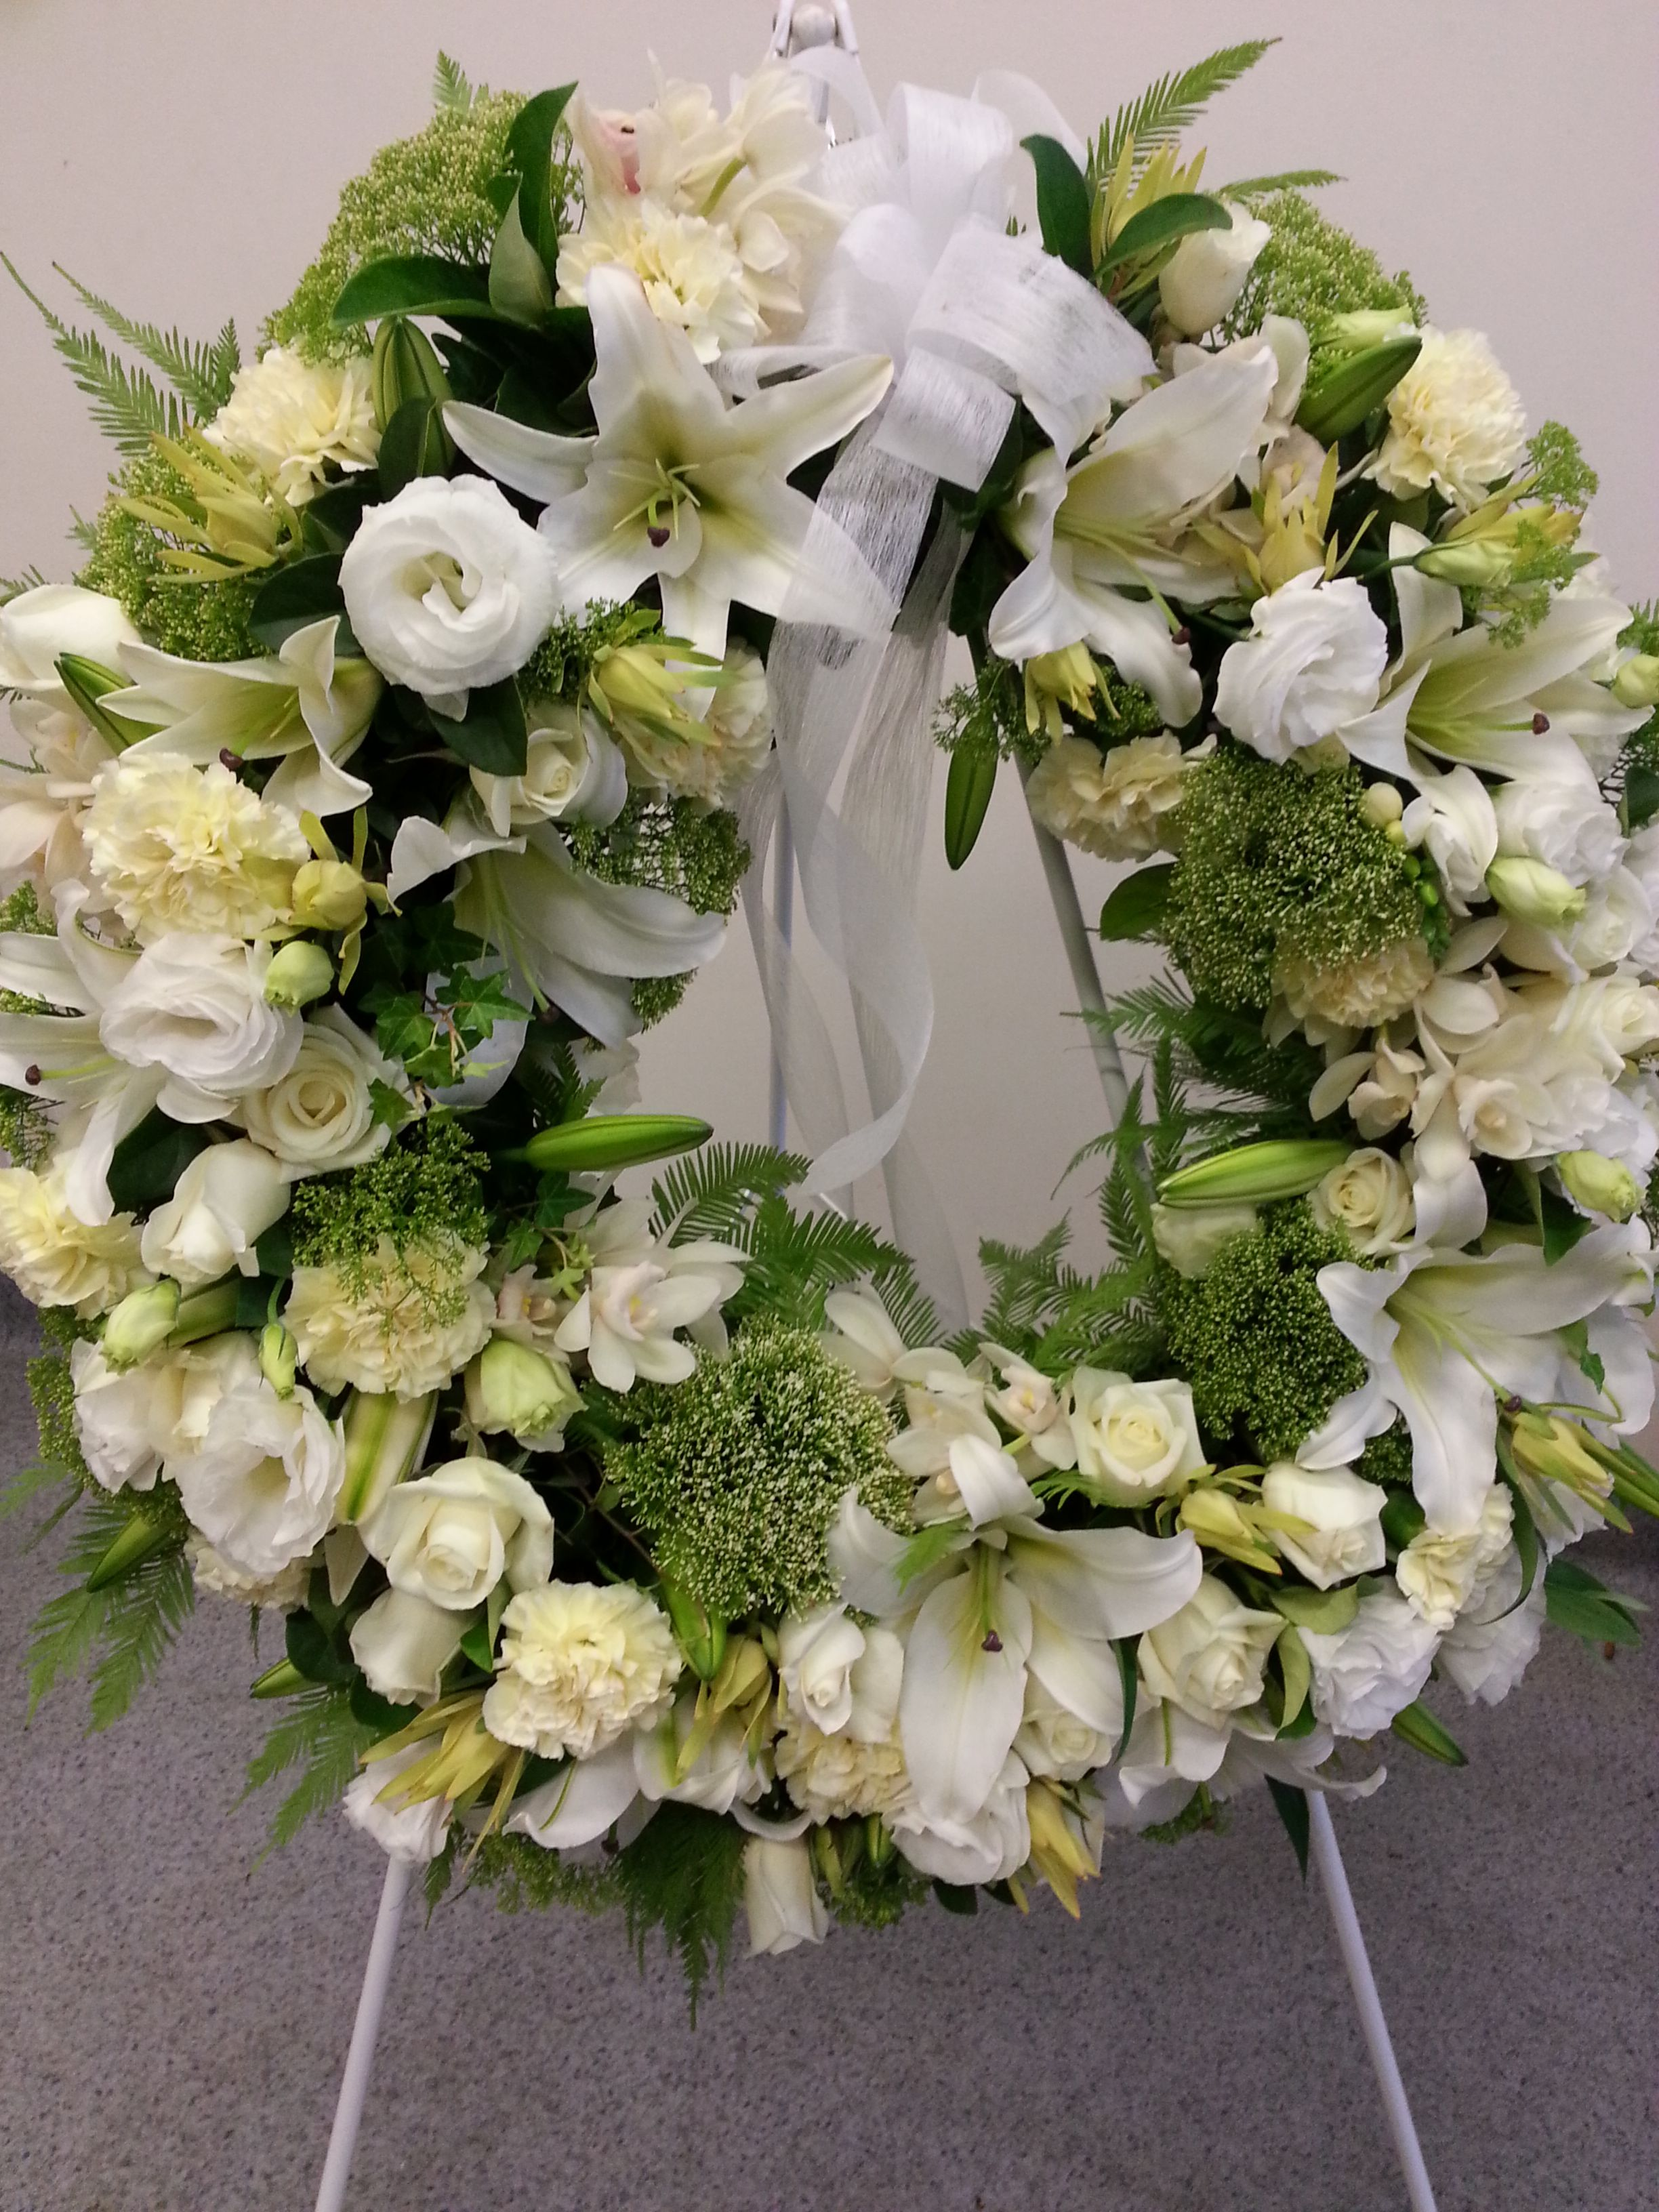 White Wreath White wreath, Wreath stand, Wreaths